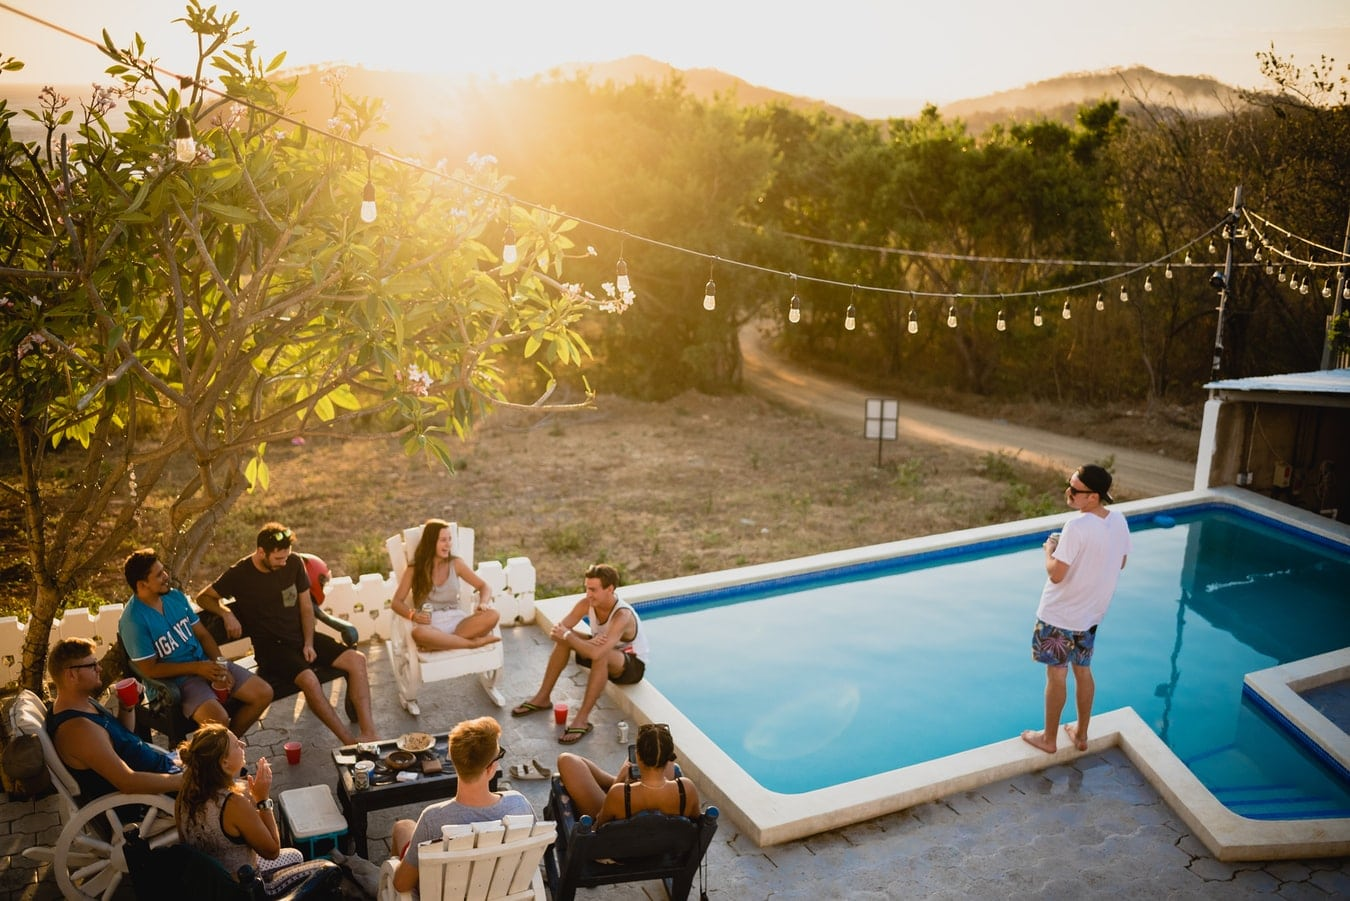 How To Plan An Exciting Summer Evening With Your Friends